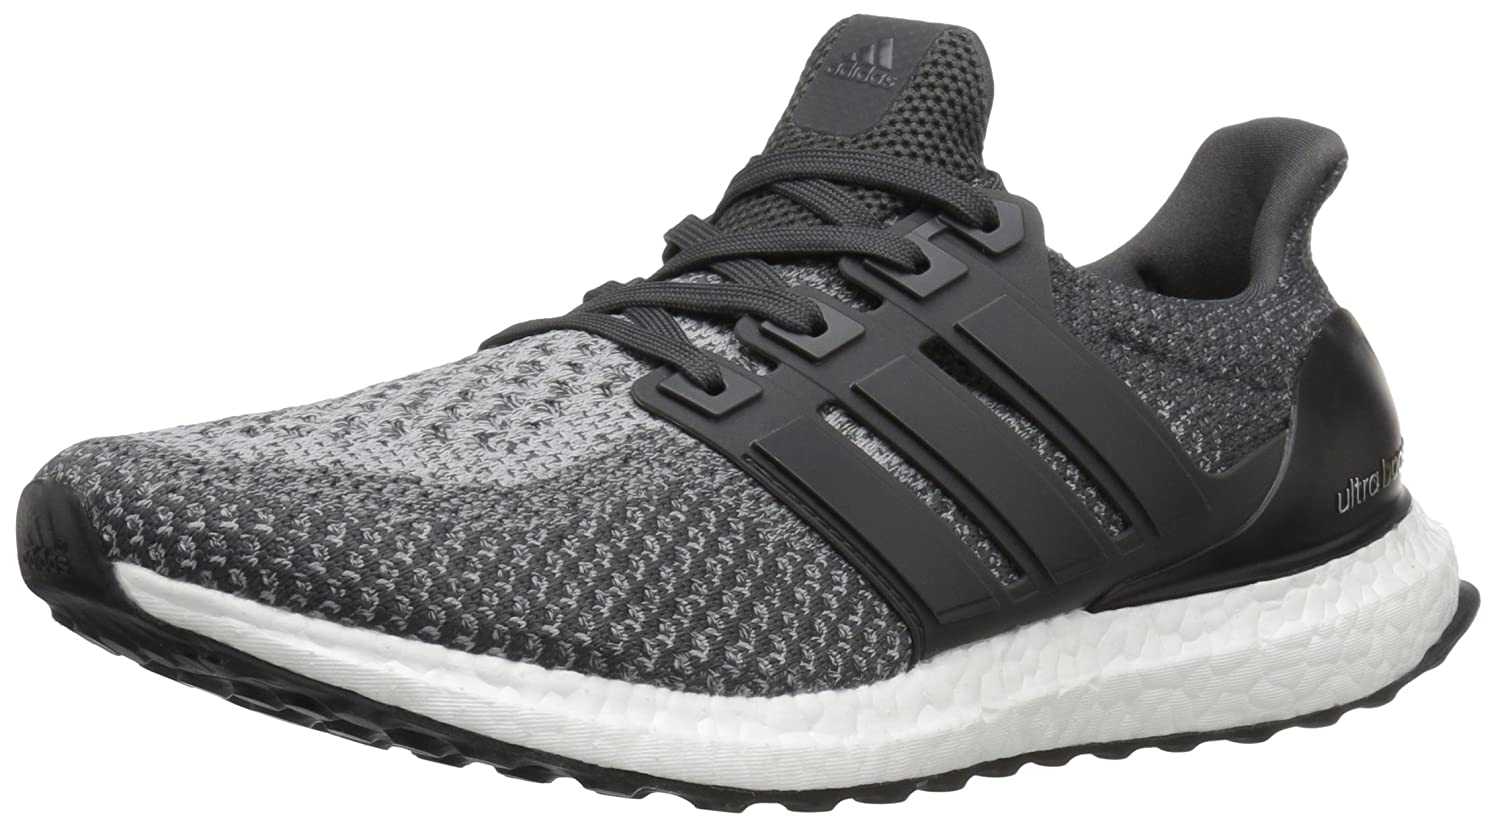 adidas Performance Men's Ultra Boost M Running Shoe B01LBMTGO6 12 Solid D(M) US|Dgh Solid Grey/Dgh Solid 12 Grey/Black fa7ac9